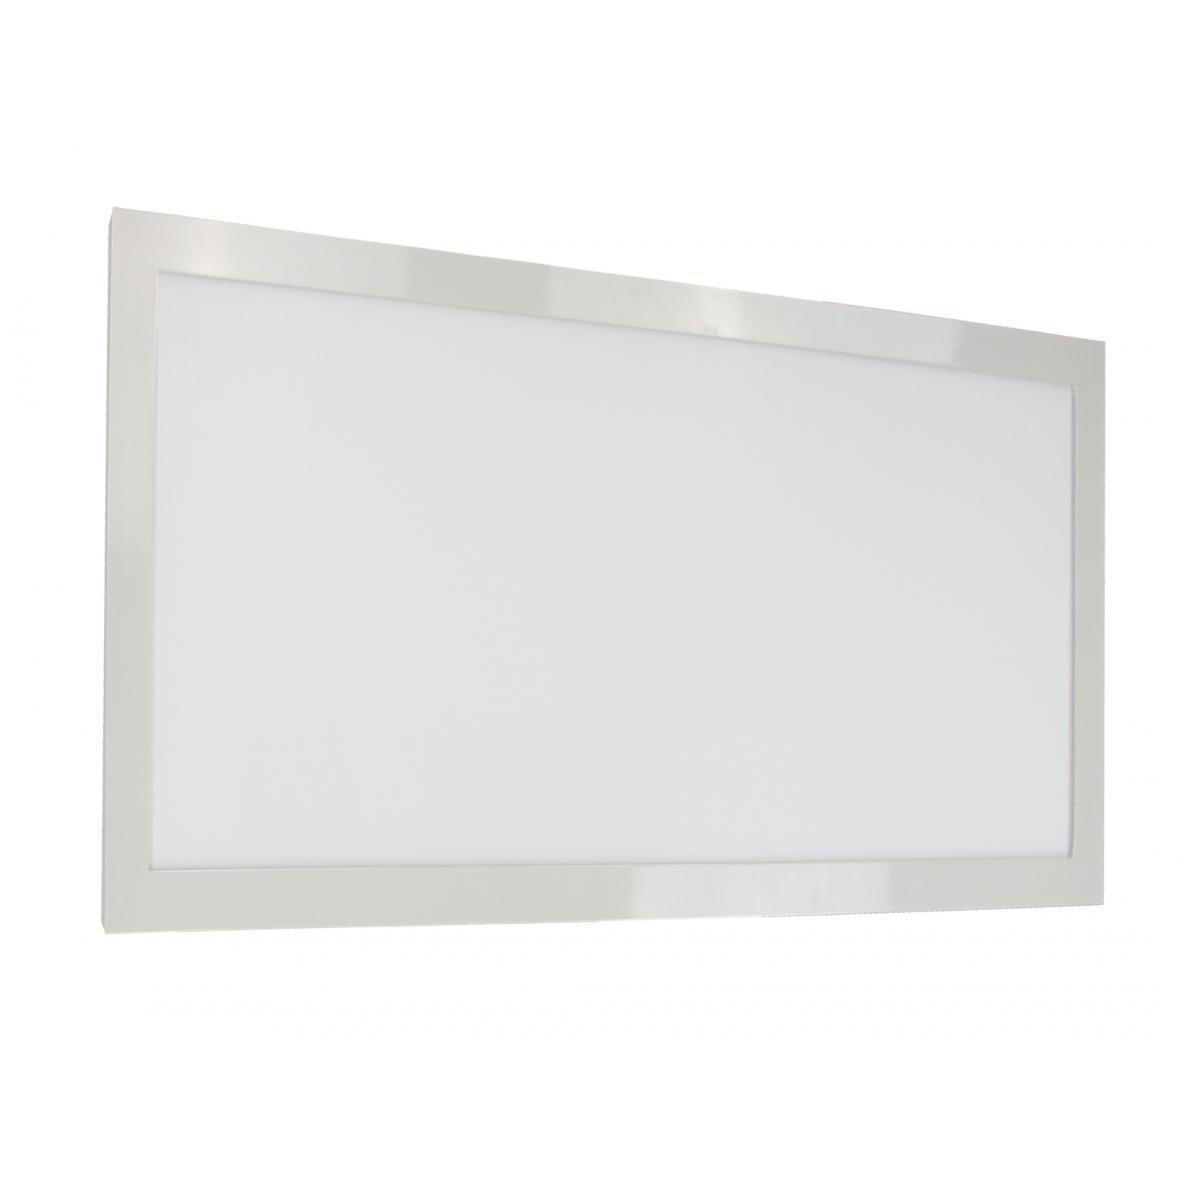 "22 Watt 12"" x 24"" Surface Mount LED Fixture 3000K 90 CRI Low Profile 120/277 Volts Ceiling Nuvo Lighting"